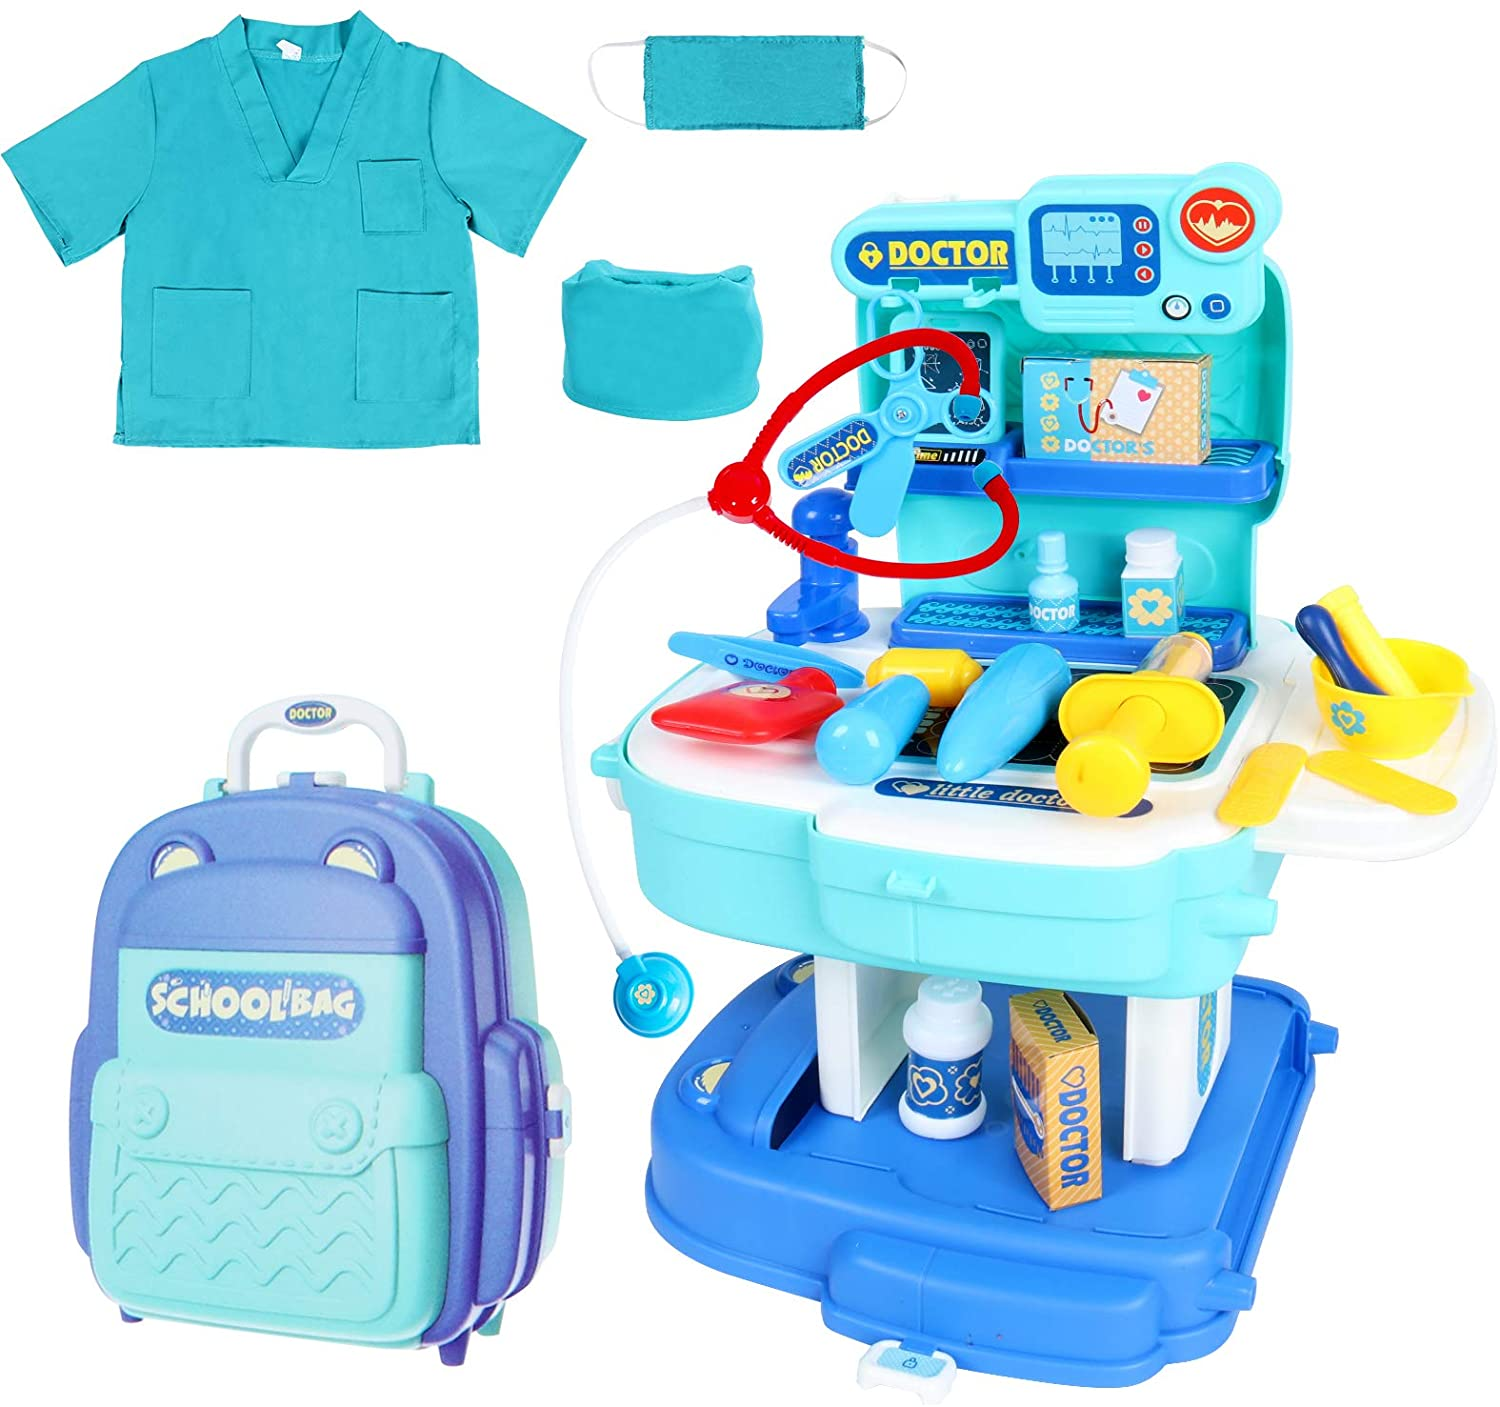 WINDUDU/Doctor/Kit/for/Kids/34Pcs/Realistic/Pretend/Medical/Playset/Toy/with Doc Costume Gift/for/Toddler/Boy/Girl